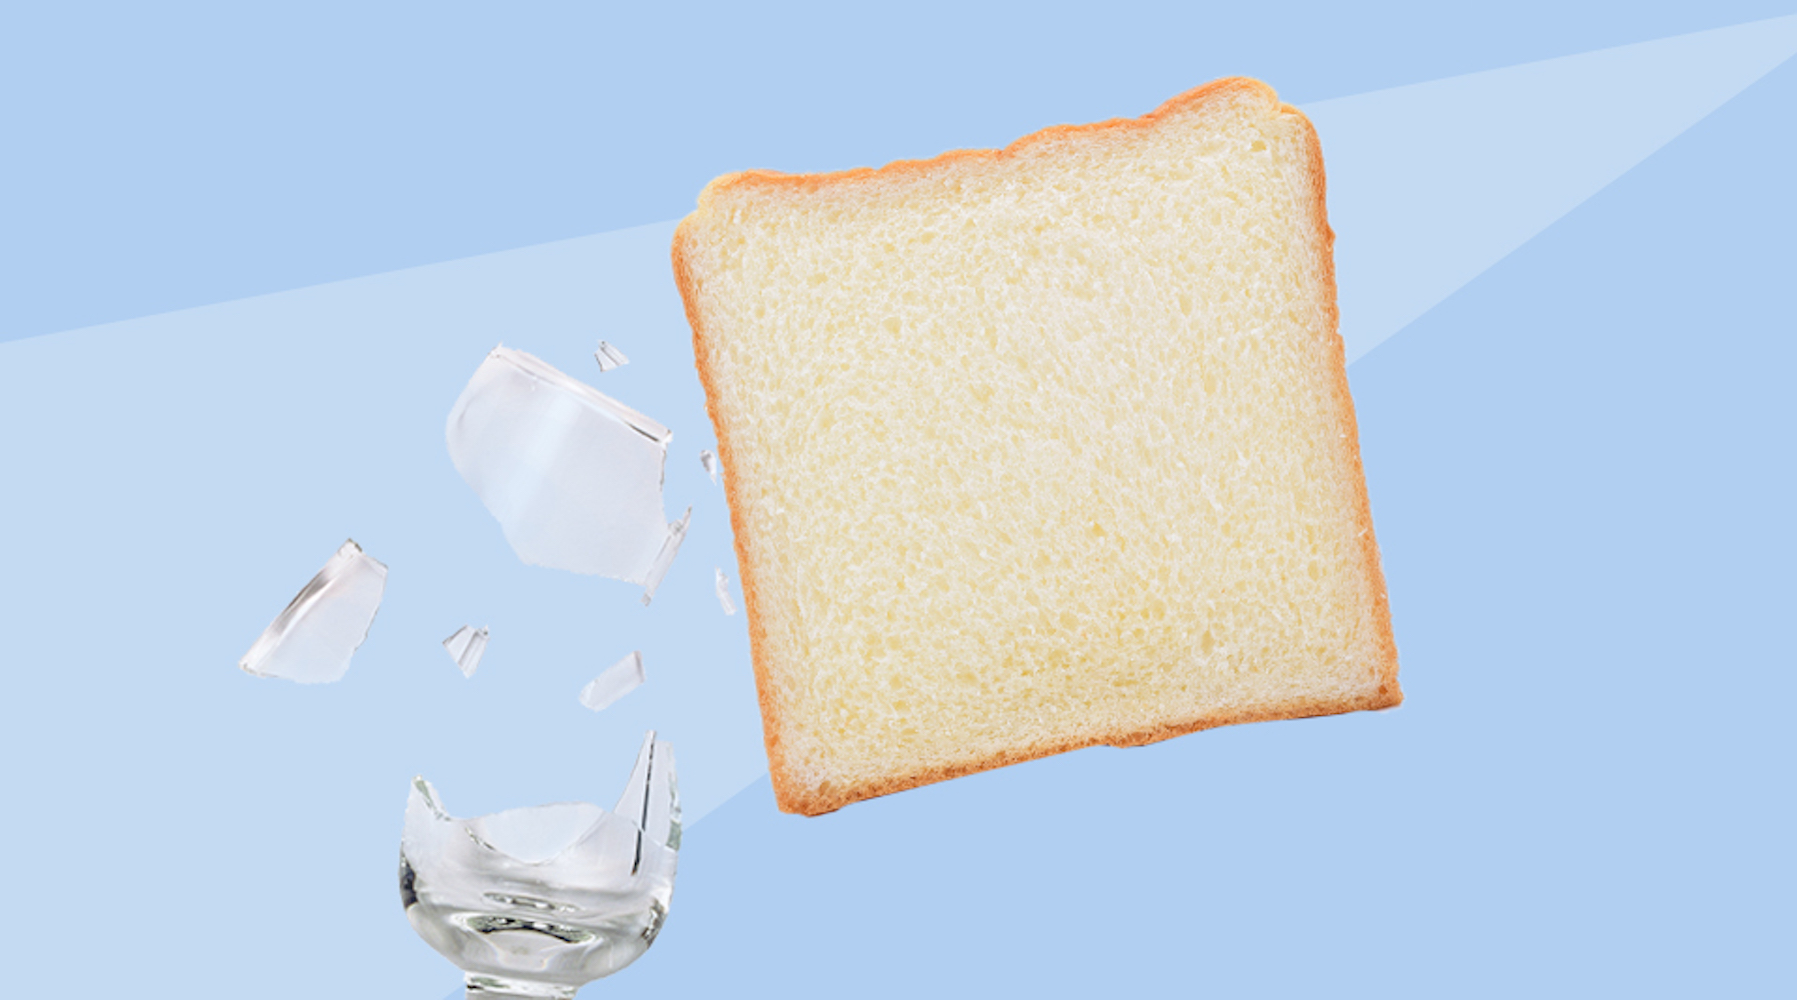 Real Simple Best Cleaning Hacks, bread and broken glass